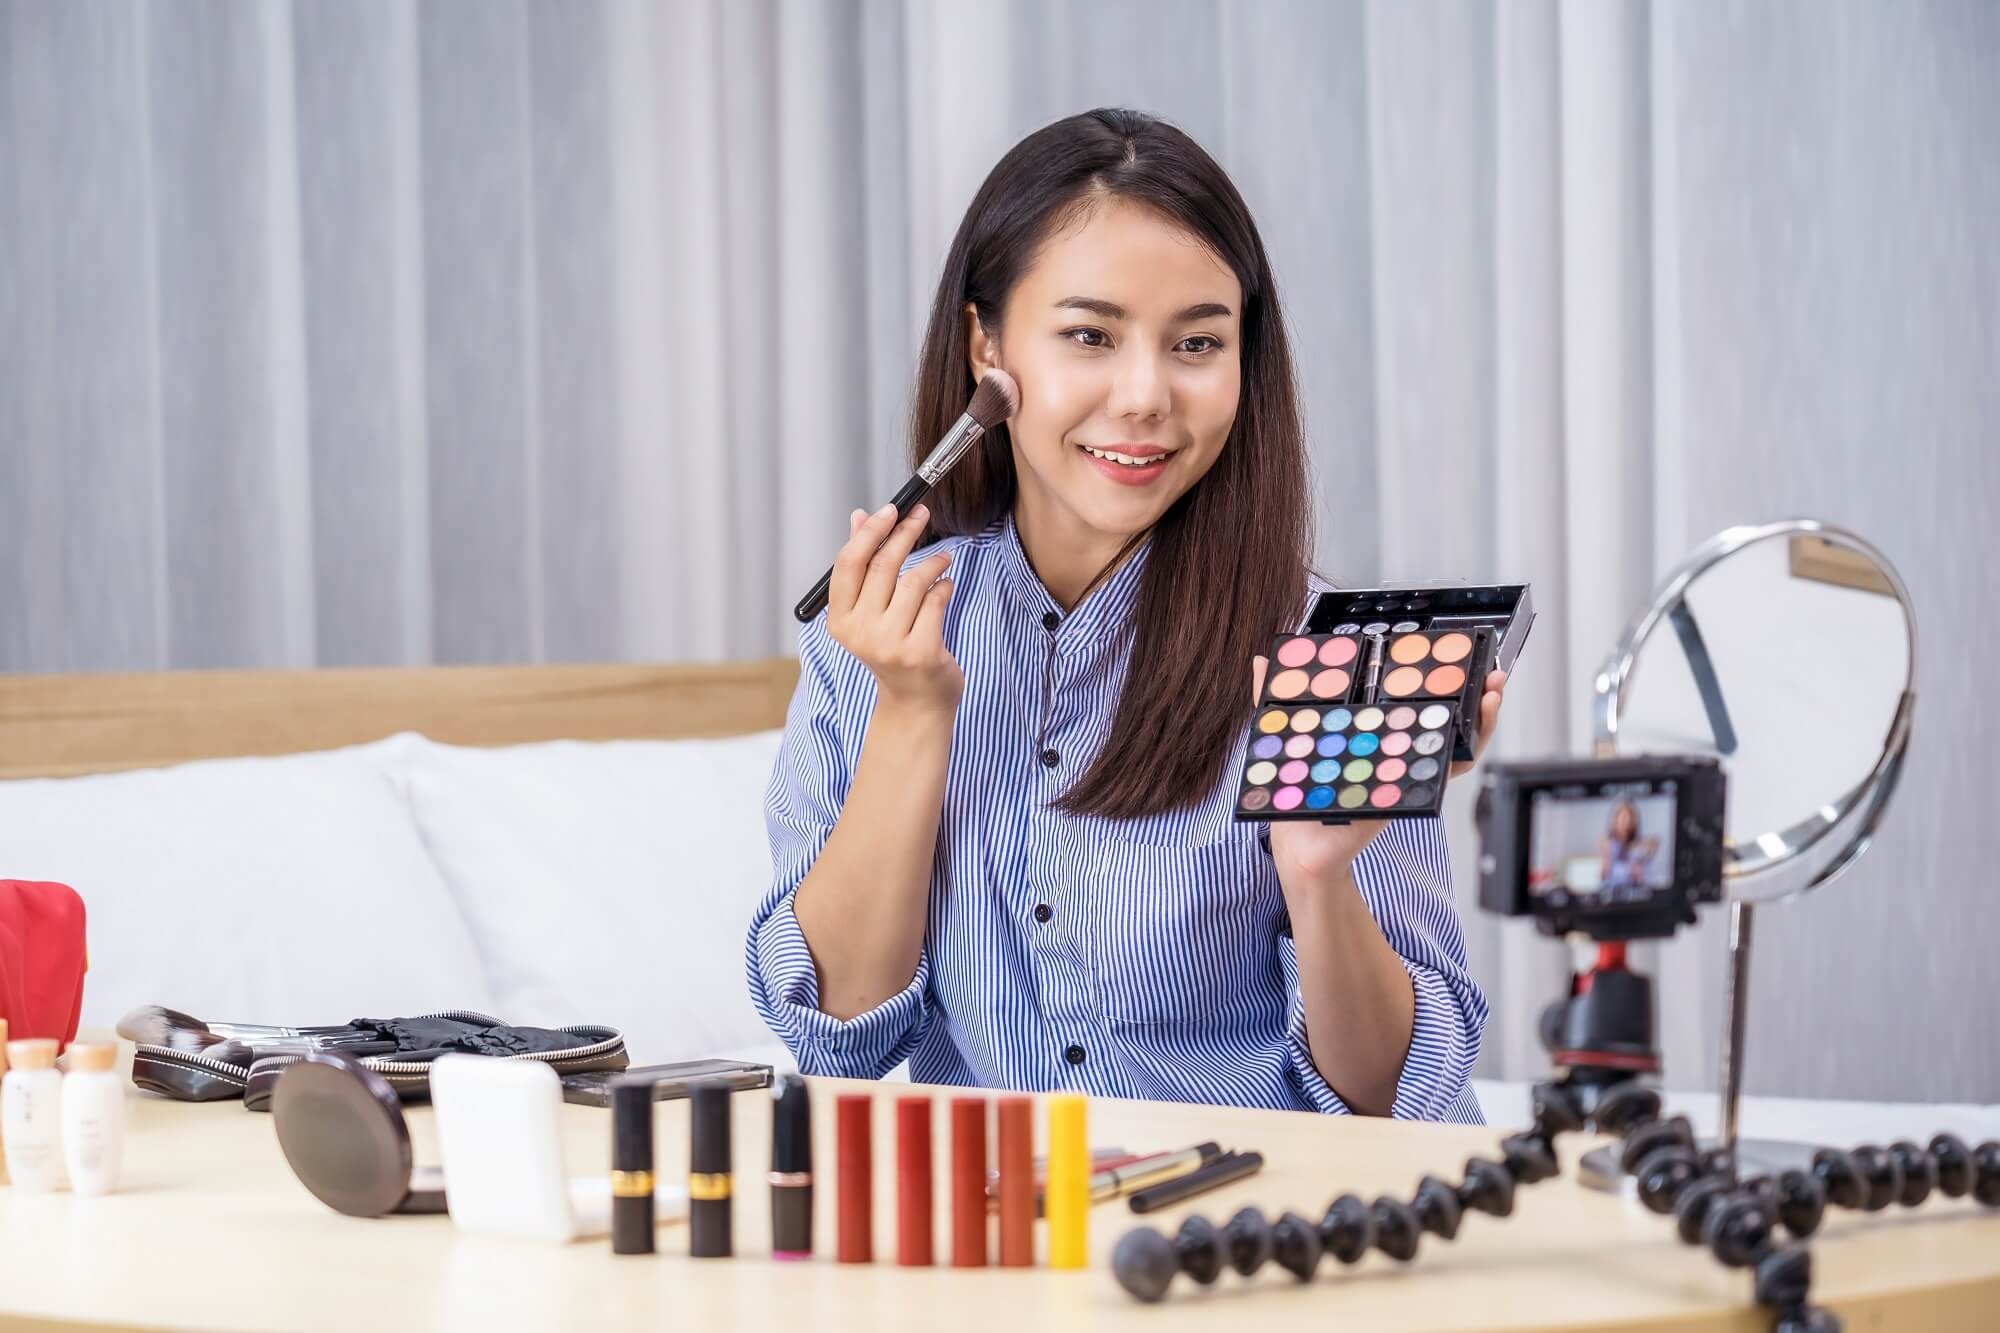 beauty vlogger showing makeup online tutorial services on social network media via video recording